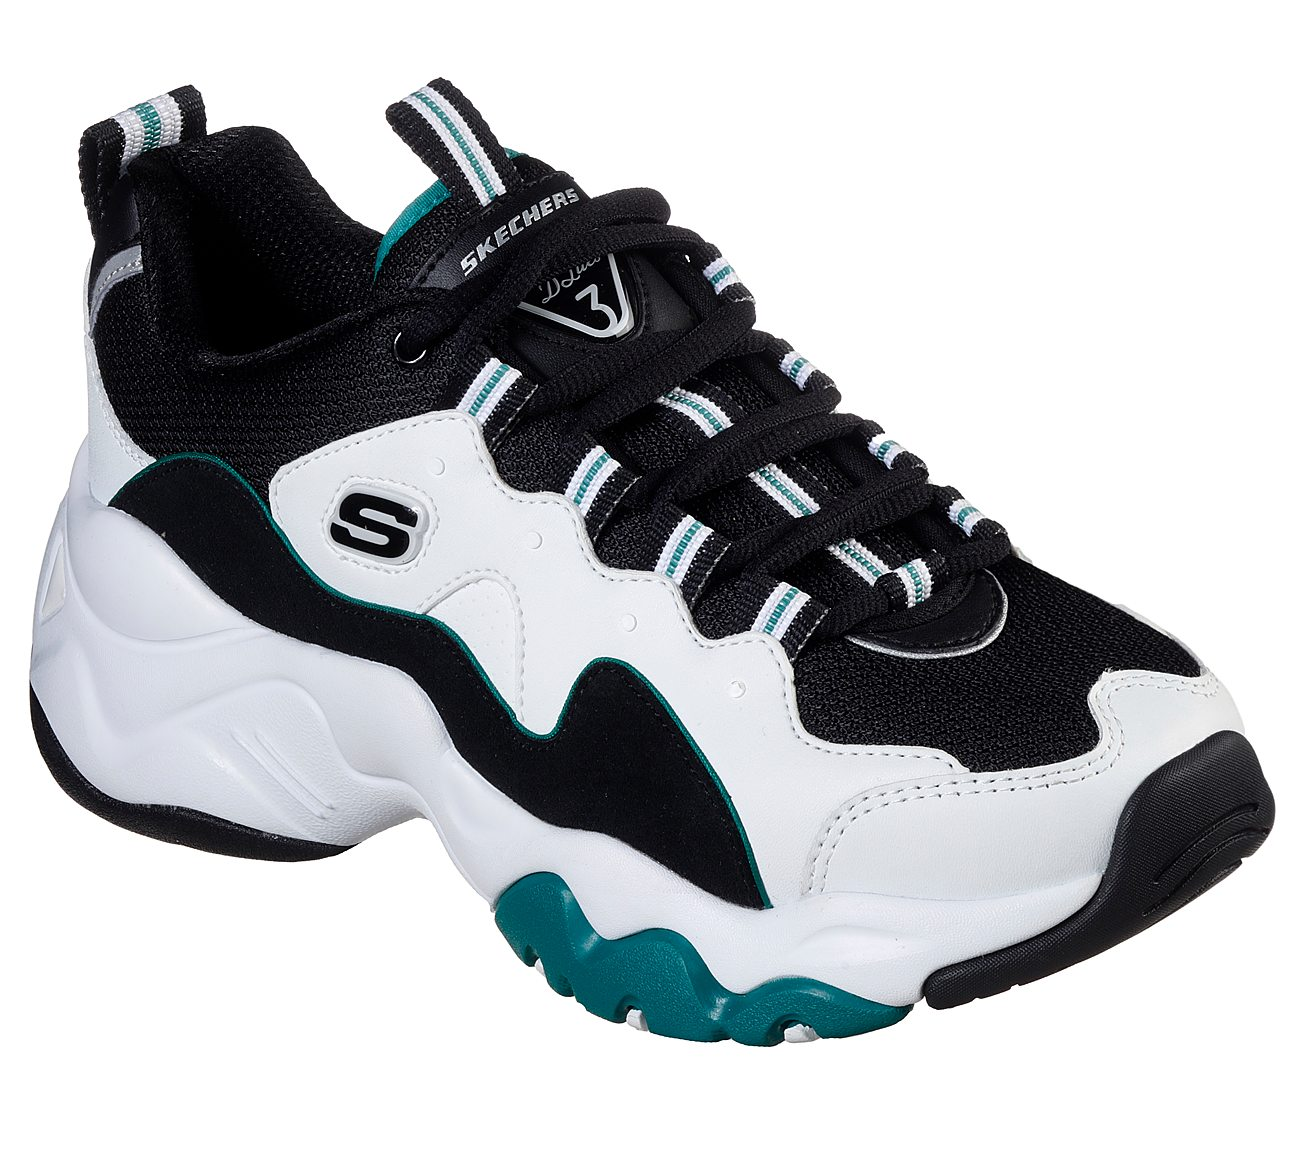 92b2cb92a0cb Buy SKECHERS D Lites 3 - Zenway Sport Shoes only  75.00